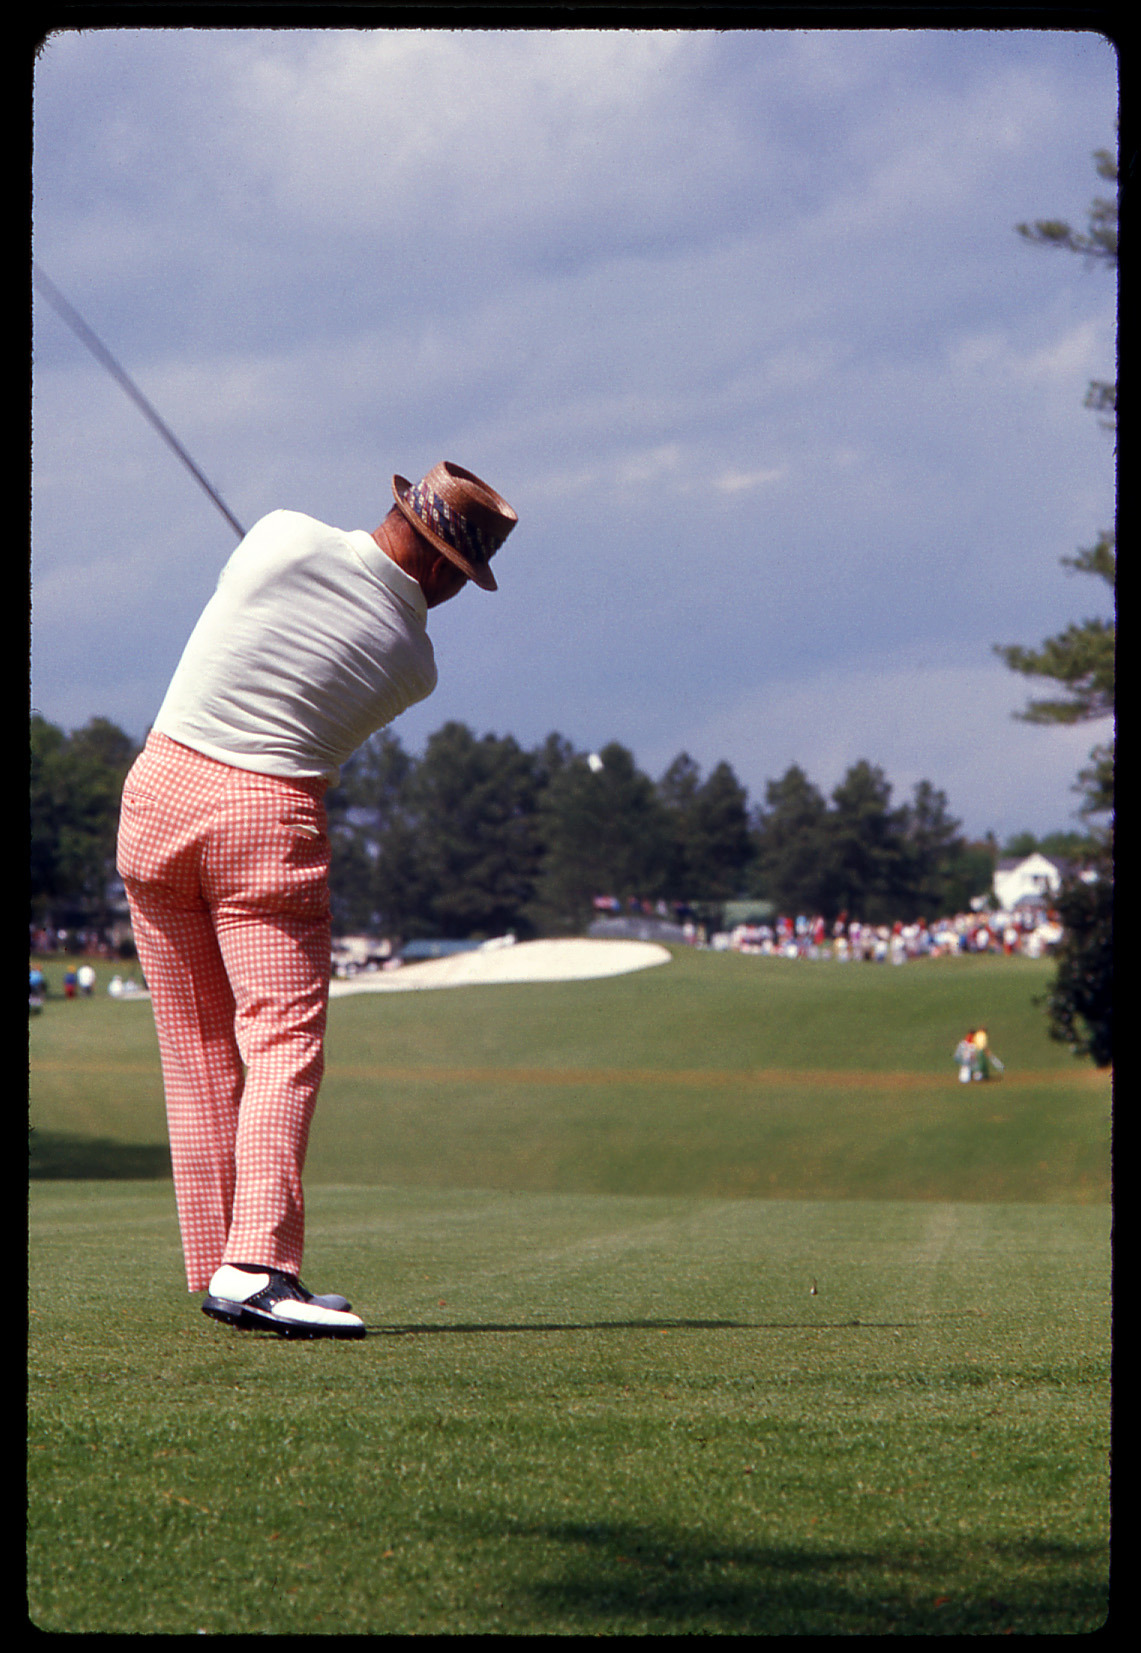 rapgamezackmorris:  golfdigestphoto:  Sam Snead tees off on No. 18 during the 1974 Masters. Credit: Golf Digest Resource Center  #style